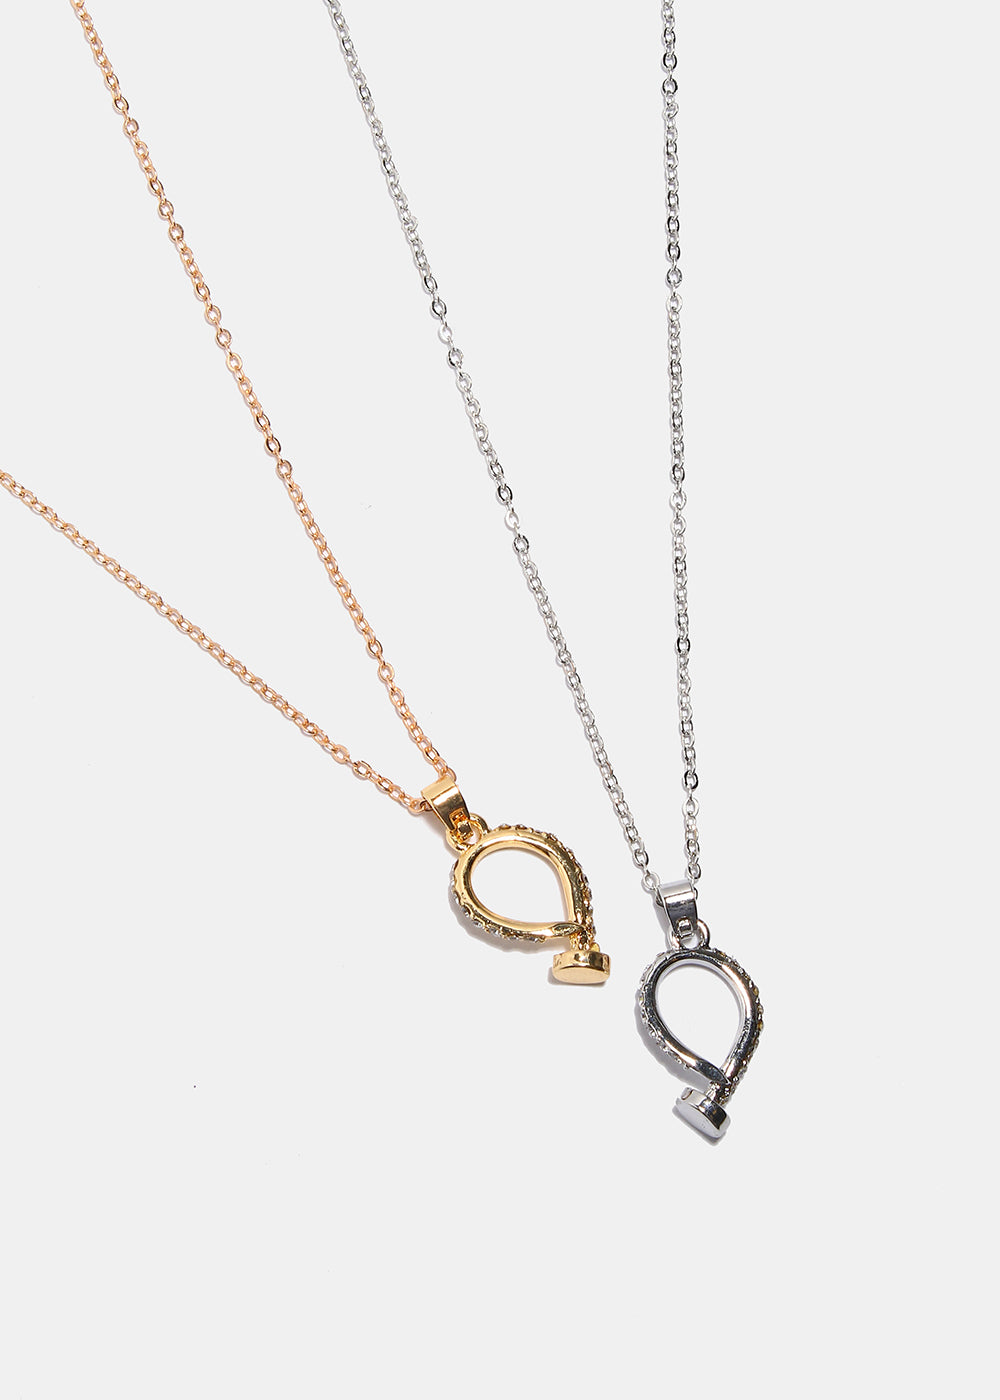 Loop nail pendant necklace shop miss a loop nail pendant necklace aloadofball Image collections